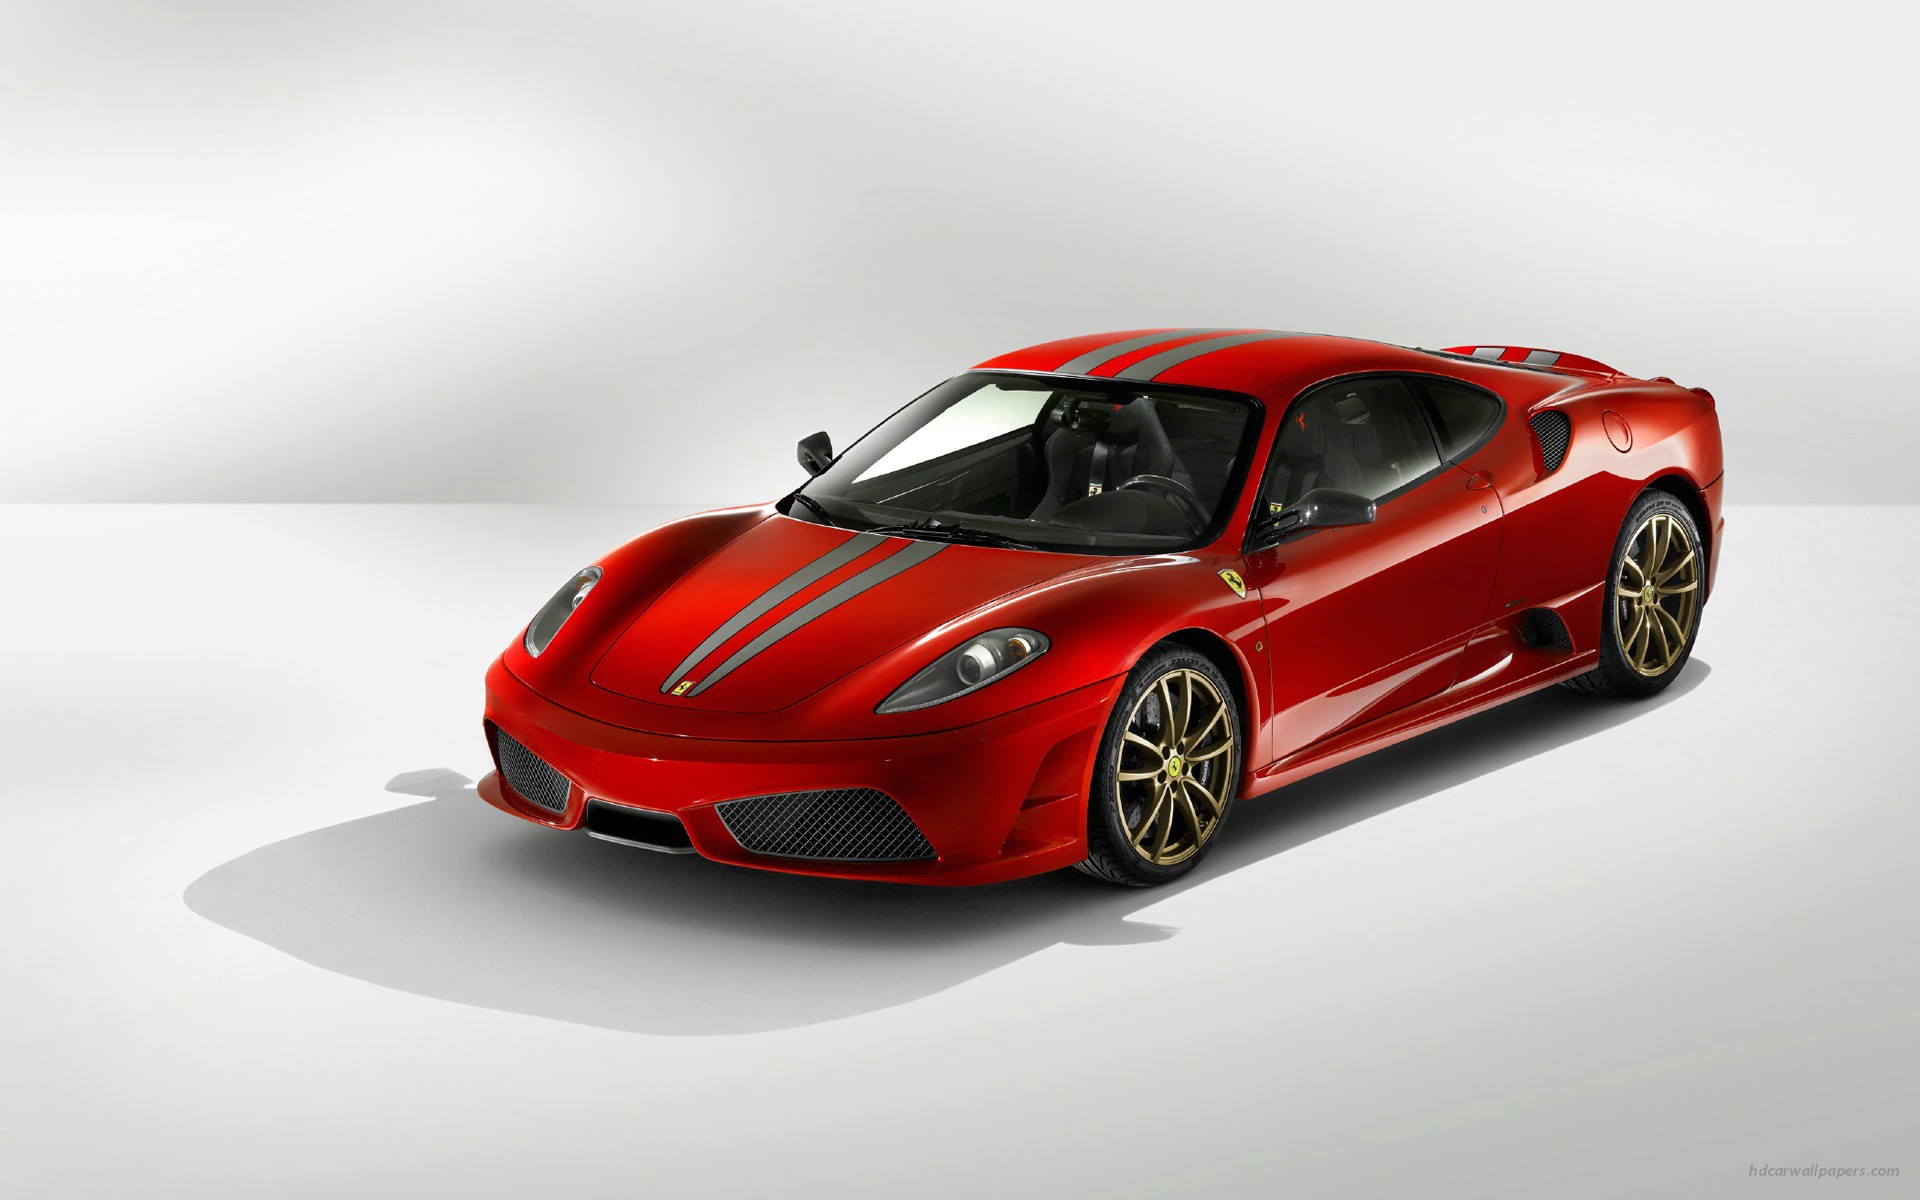 Ferrari F RED Wallpapers in jpg format for free